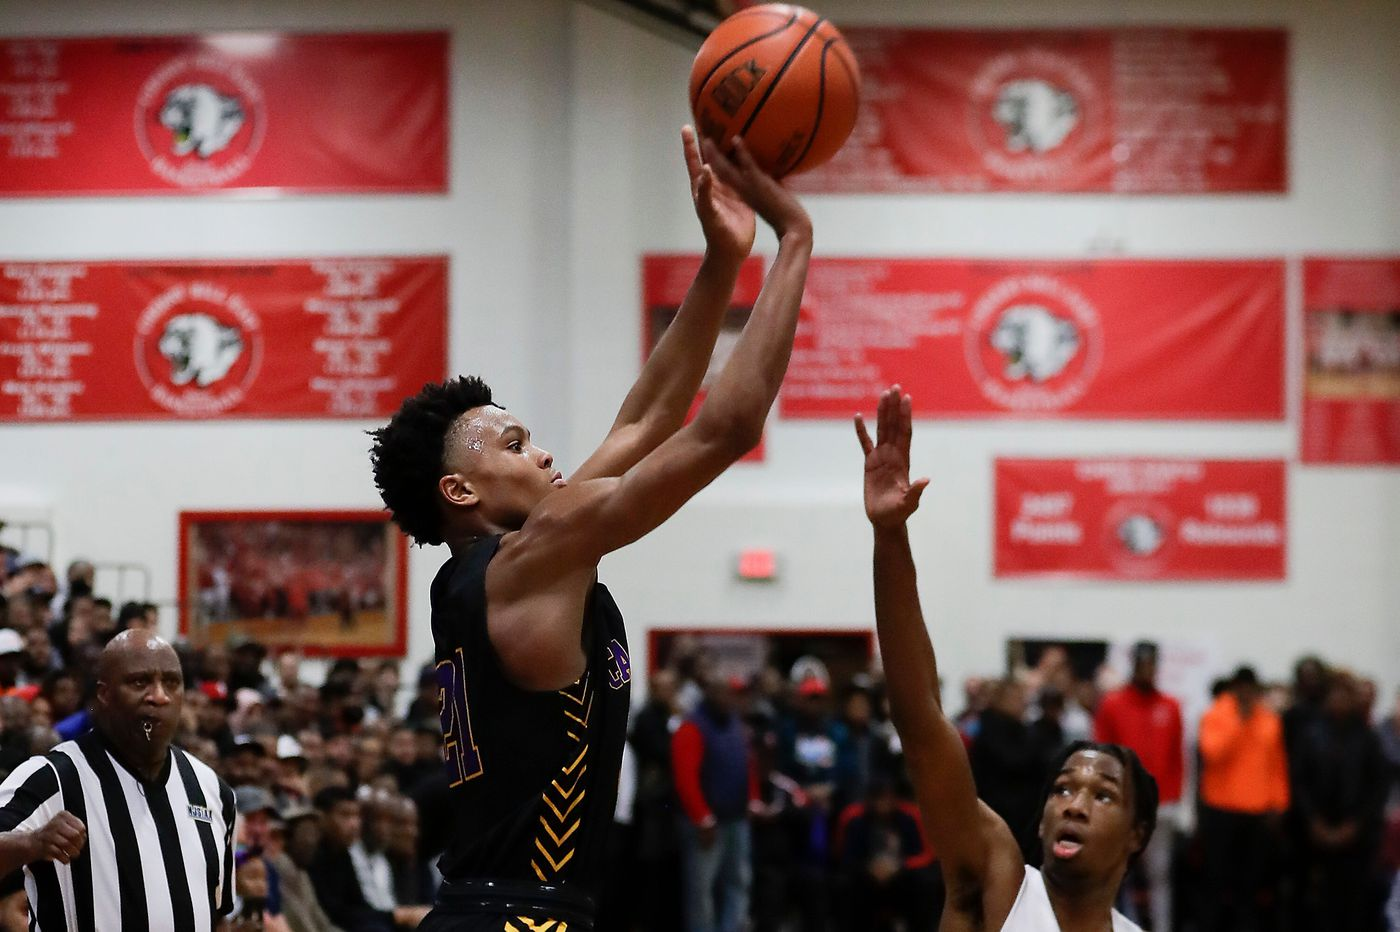 Camden basketball team to play Sierra Canyon at 2021 HoopHall Classic